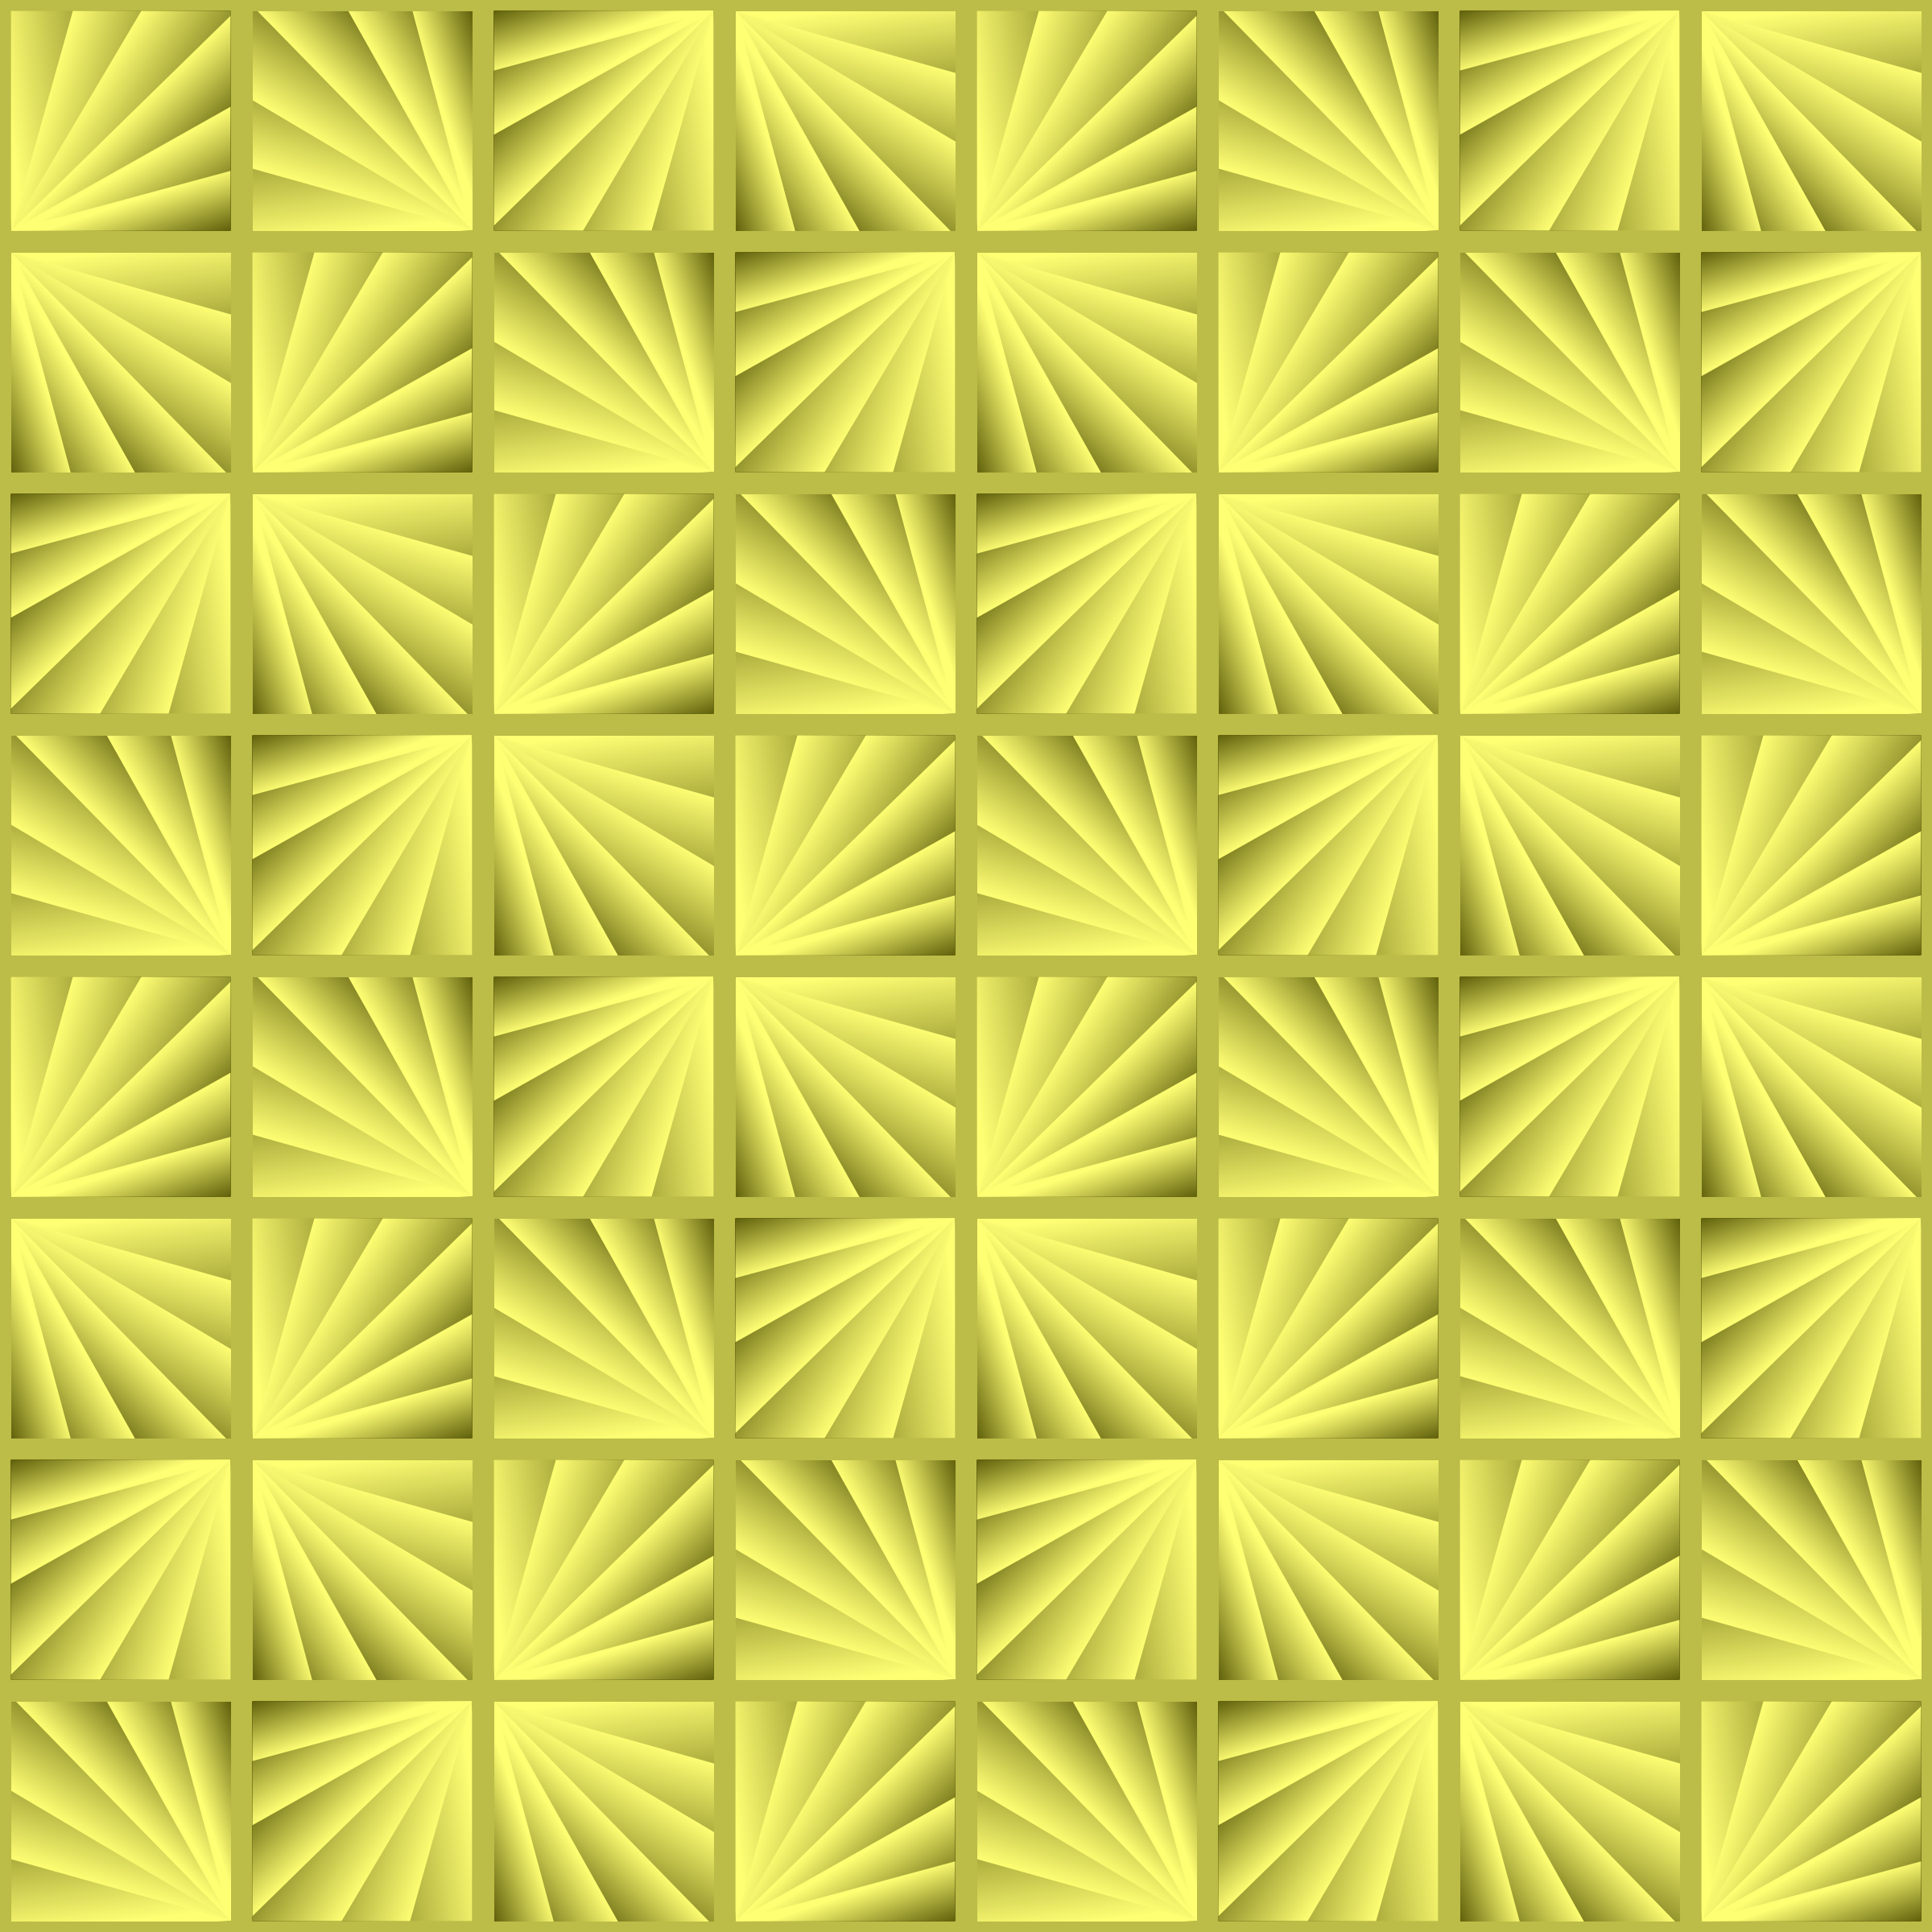 Background pattern 223 (colour 6) by Firkin